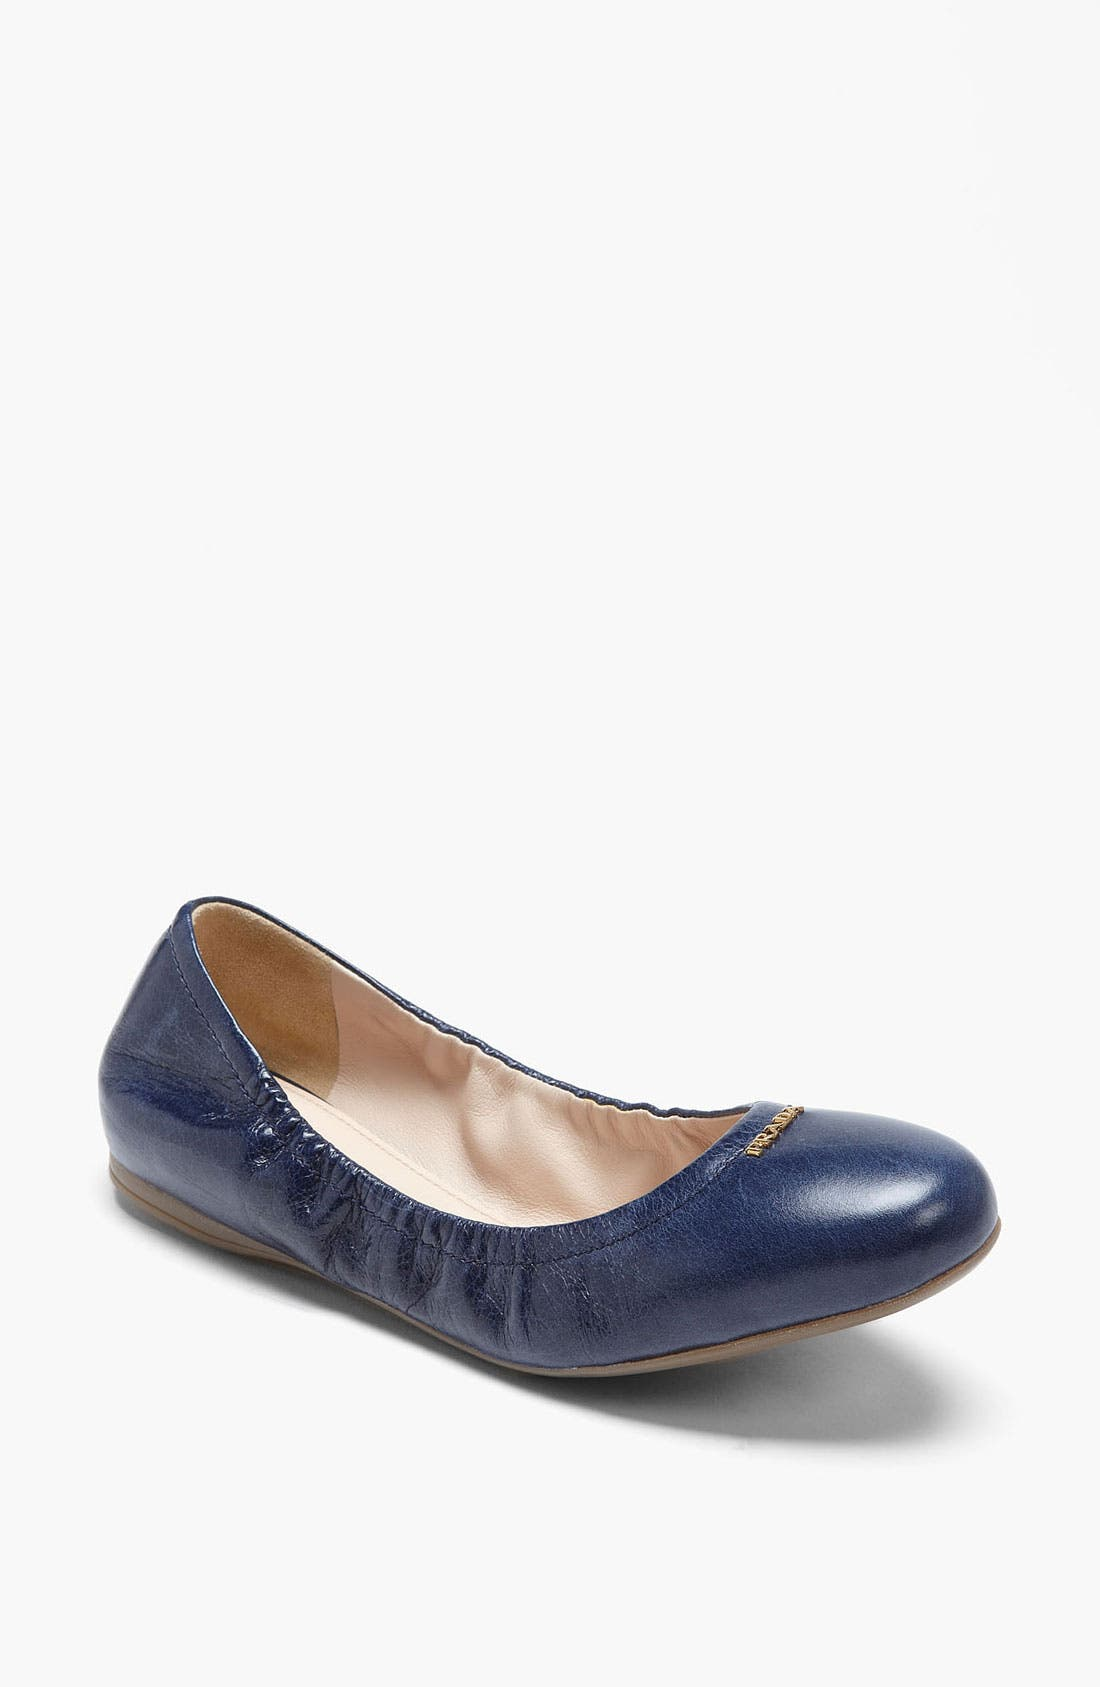 Alternate Image 1 Selected - Prada Logo Ballet Flat